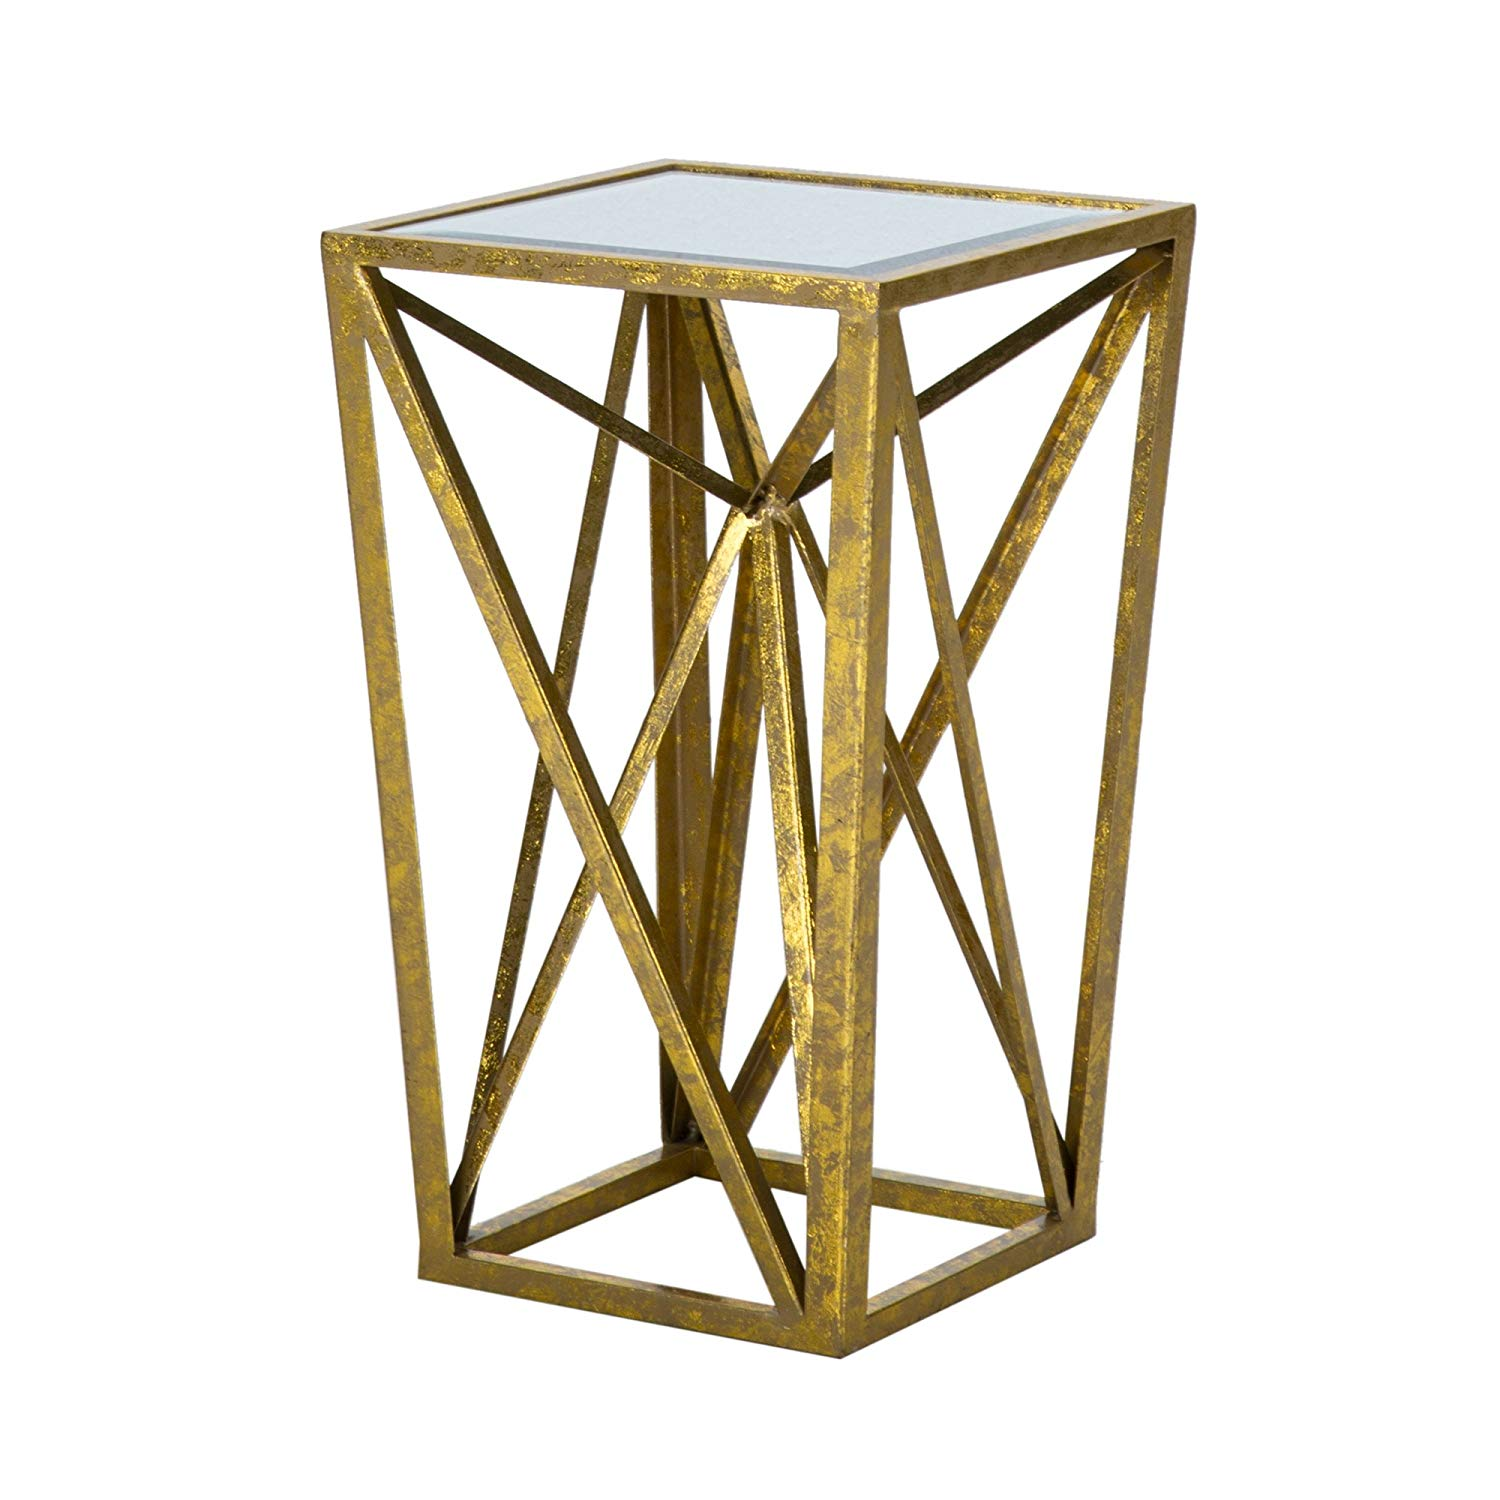 madison park zee accent tables mirror glass metal top table side gold angular design modern style end piece hollow round gray wash coffee pineapple umbrella unique outdoor